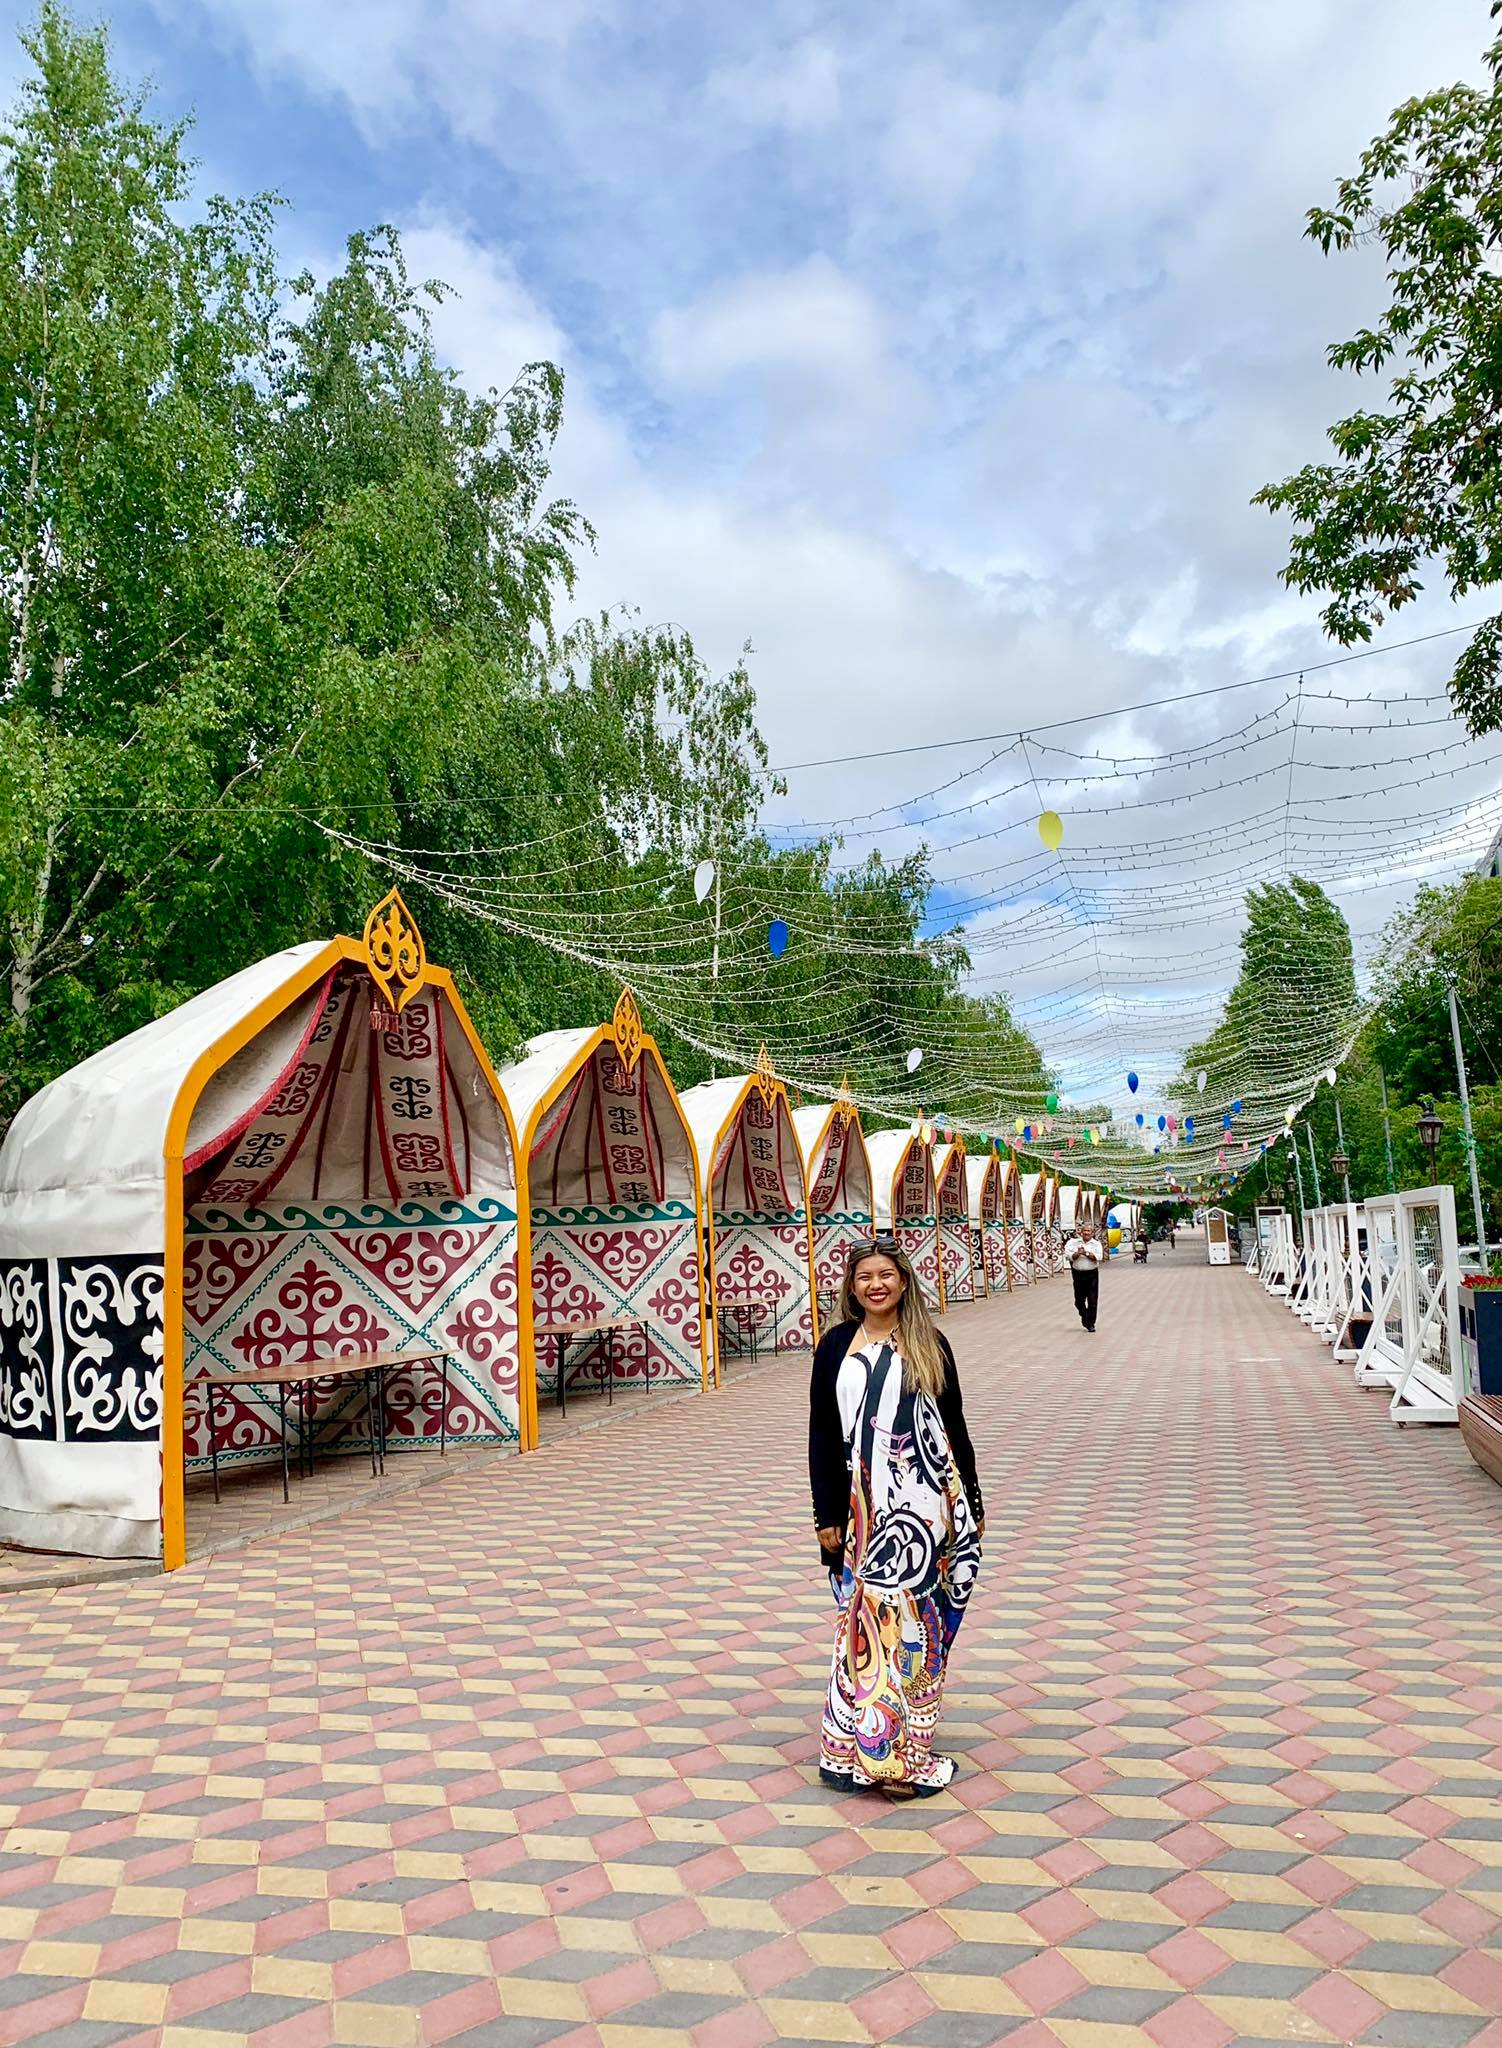 Kach Solo Travels in 2019 Nursultan  Astana - the City of the Future29.jpg